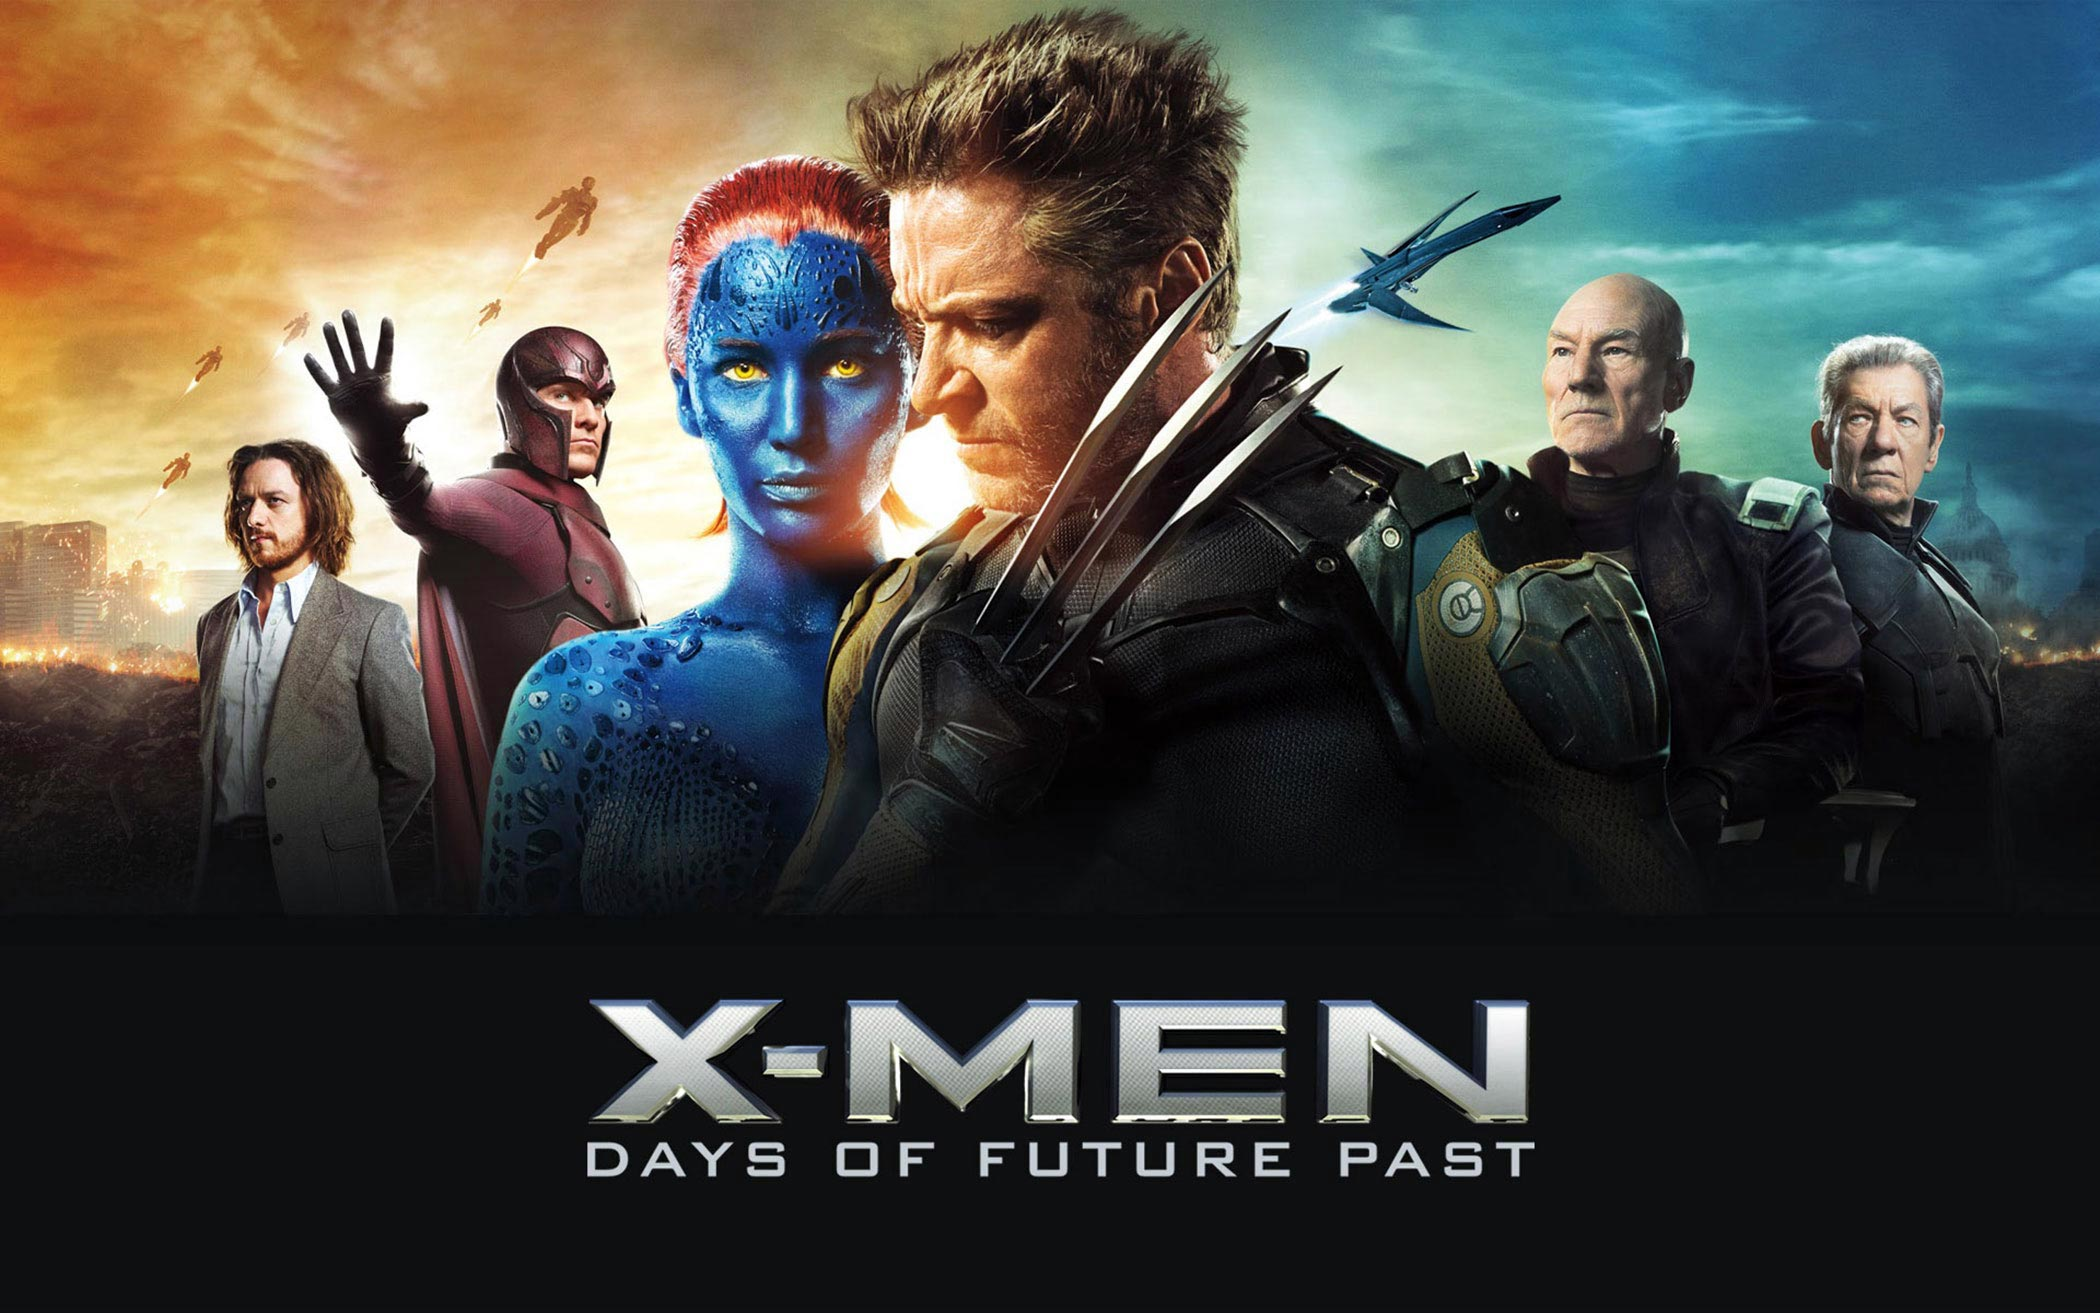 Men Days of Future Past Movie 2014 HD iPad iPhone Wallpapers 2100x1313